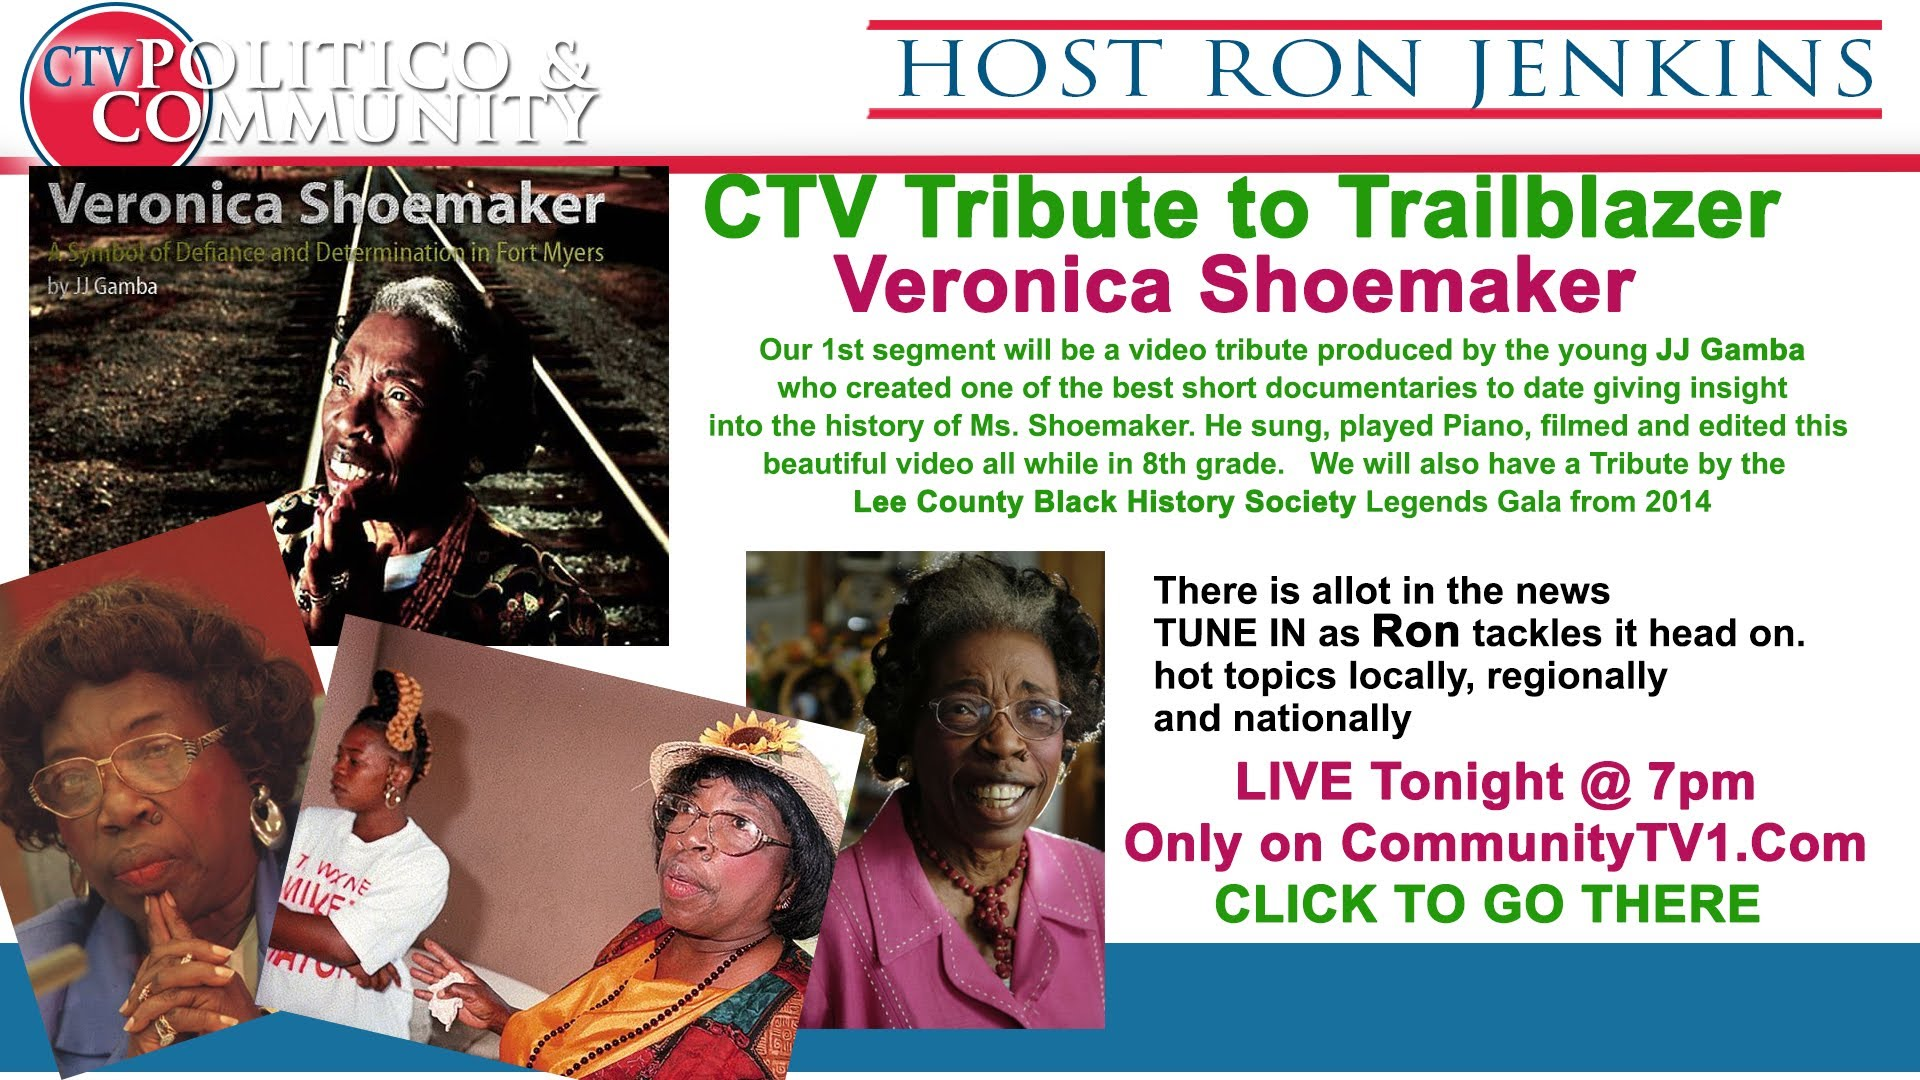 [1-27-2016] CTV Politico & Community CTV Tribute to Veronica Shoemaker & Hot topics